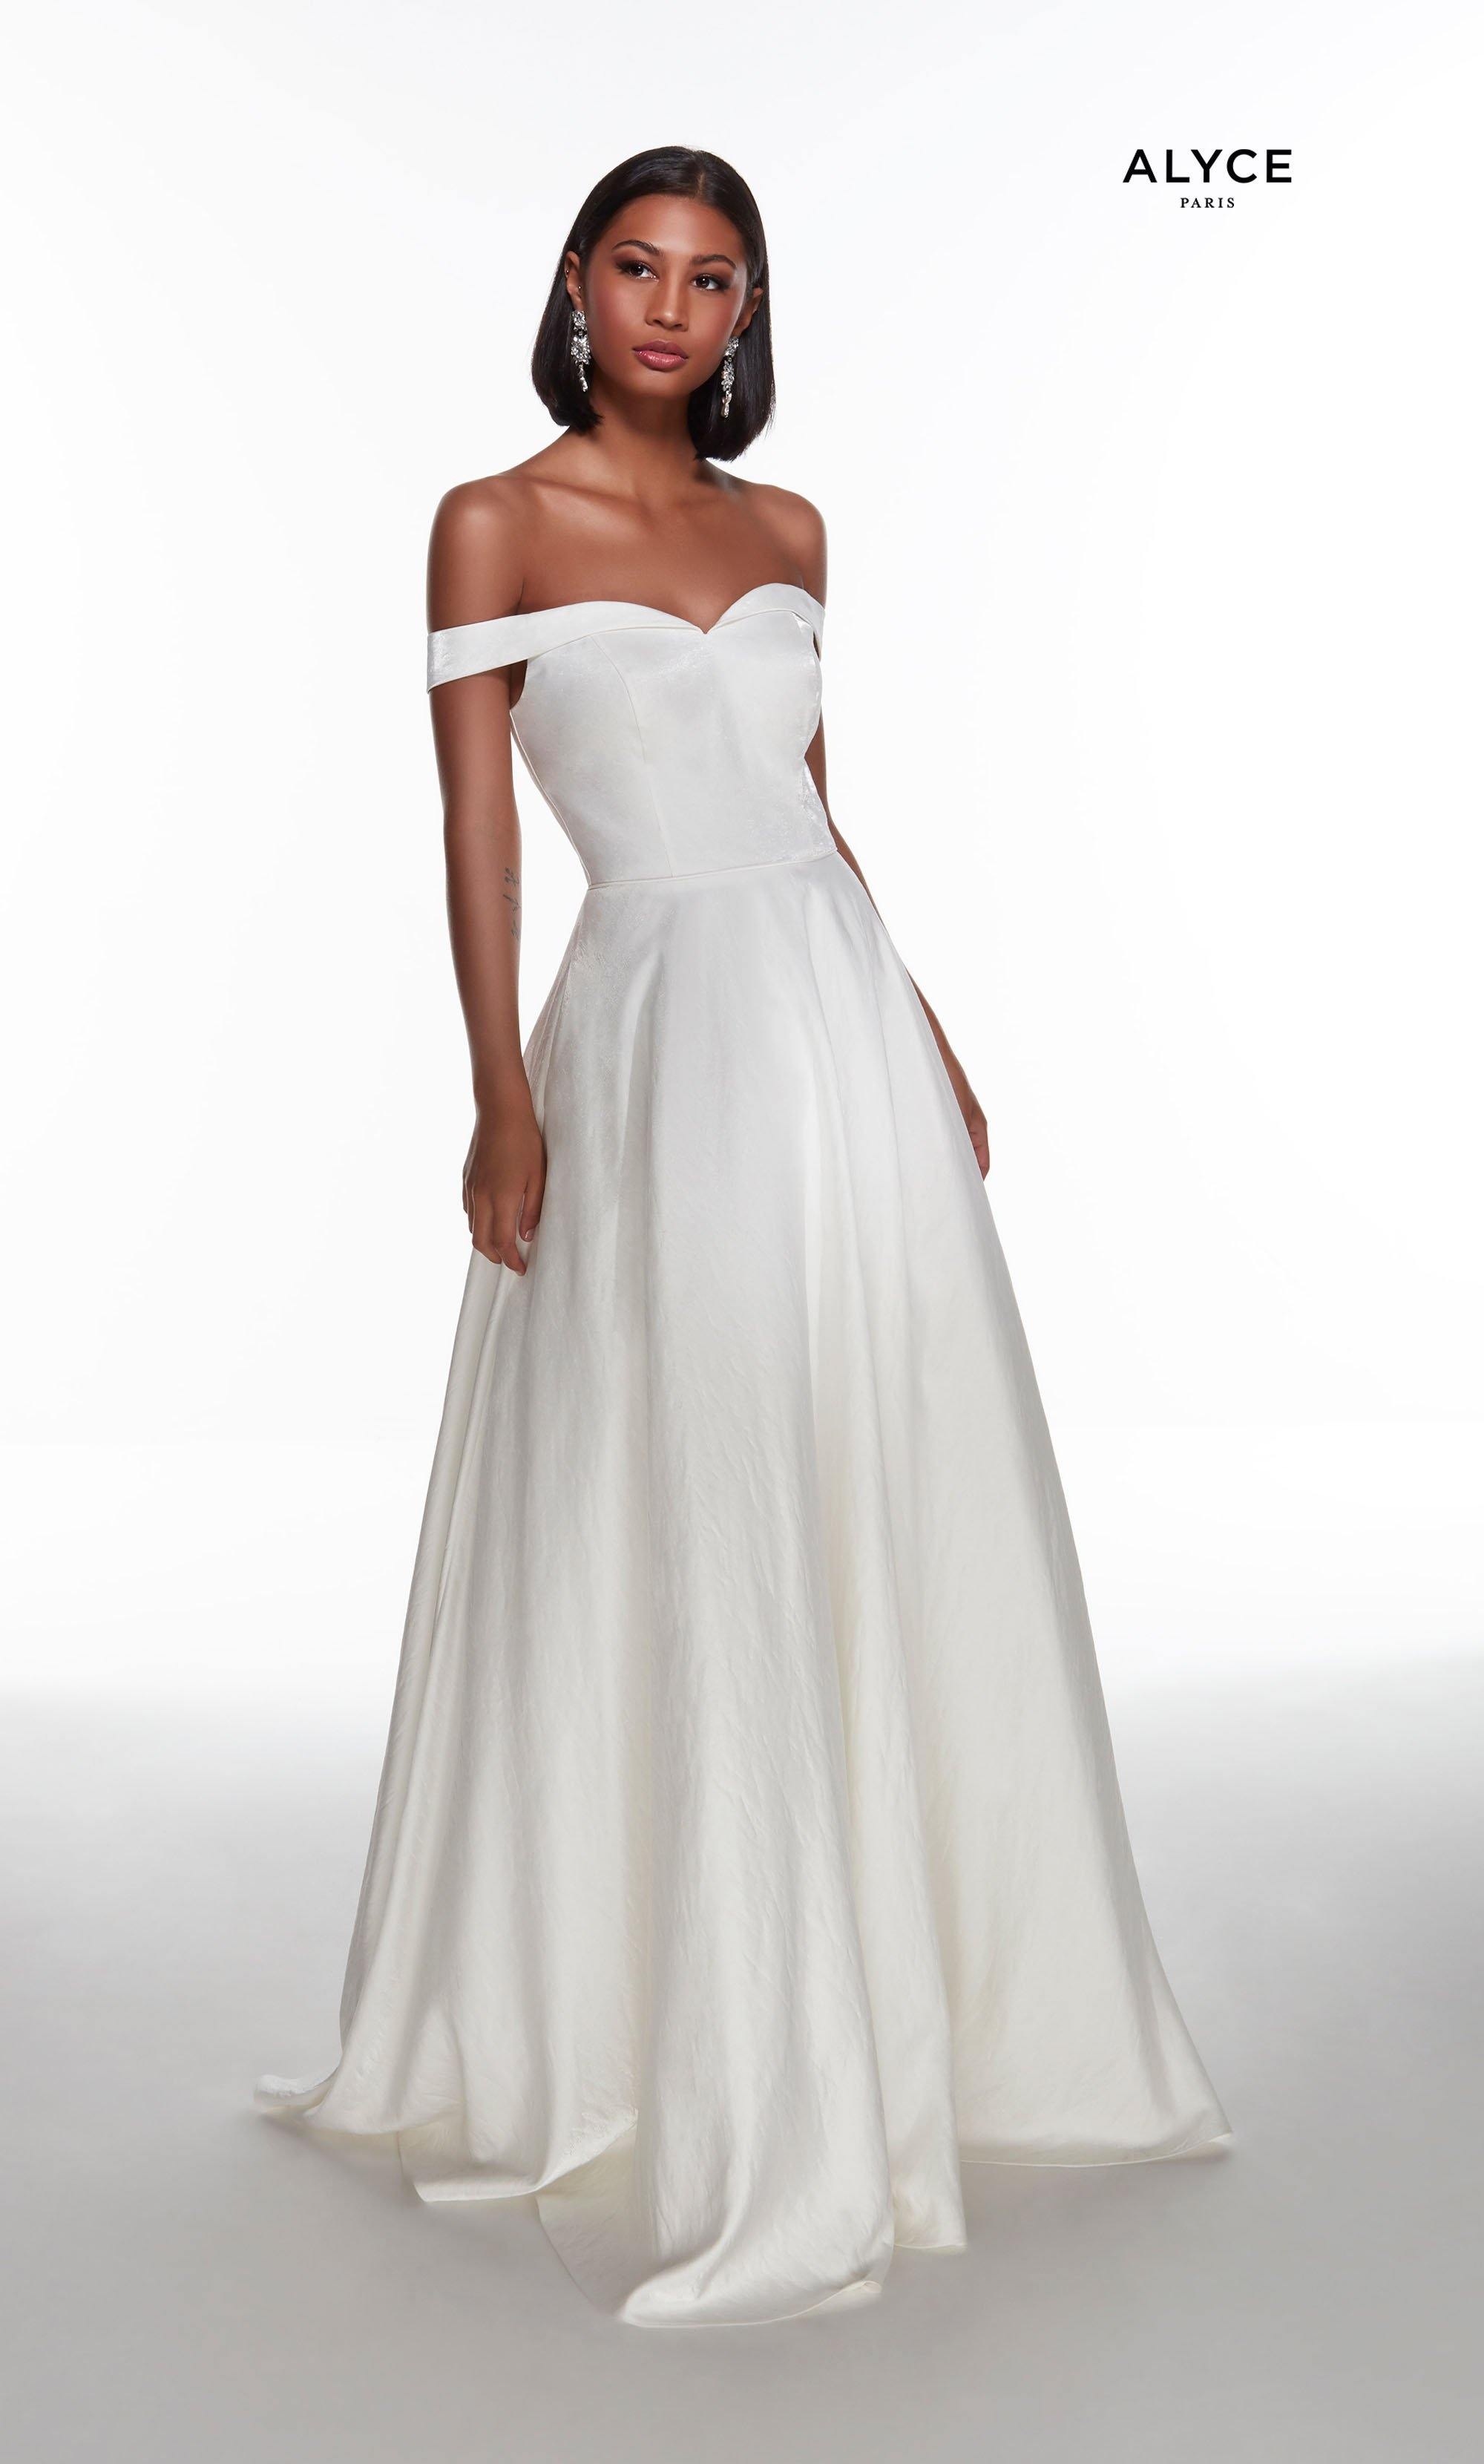 Diamond white off the shoulder shimmer satin wedding dress